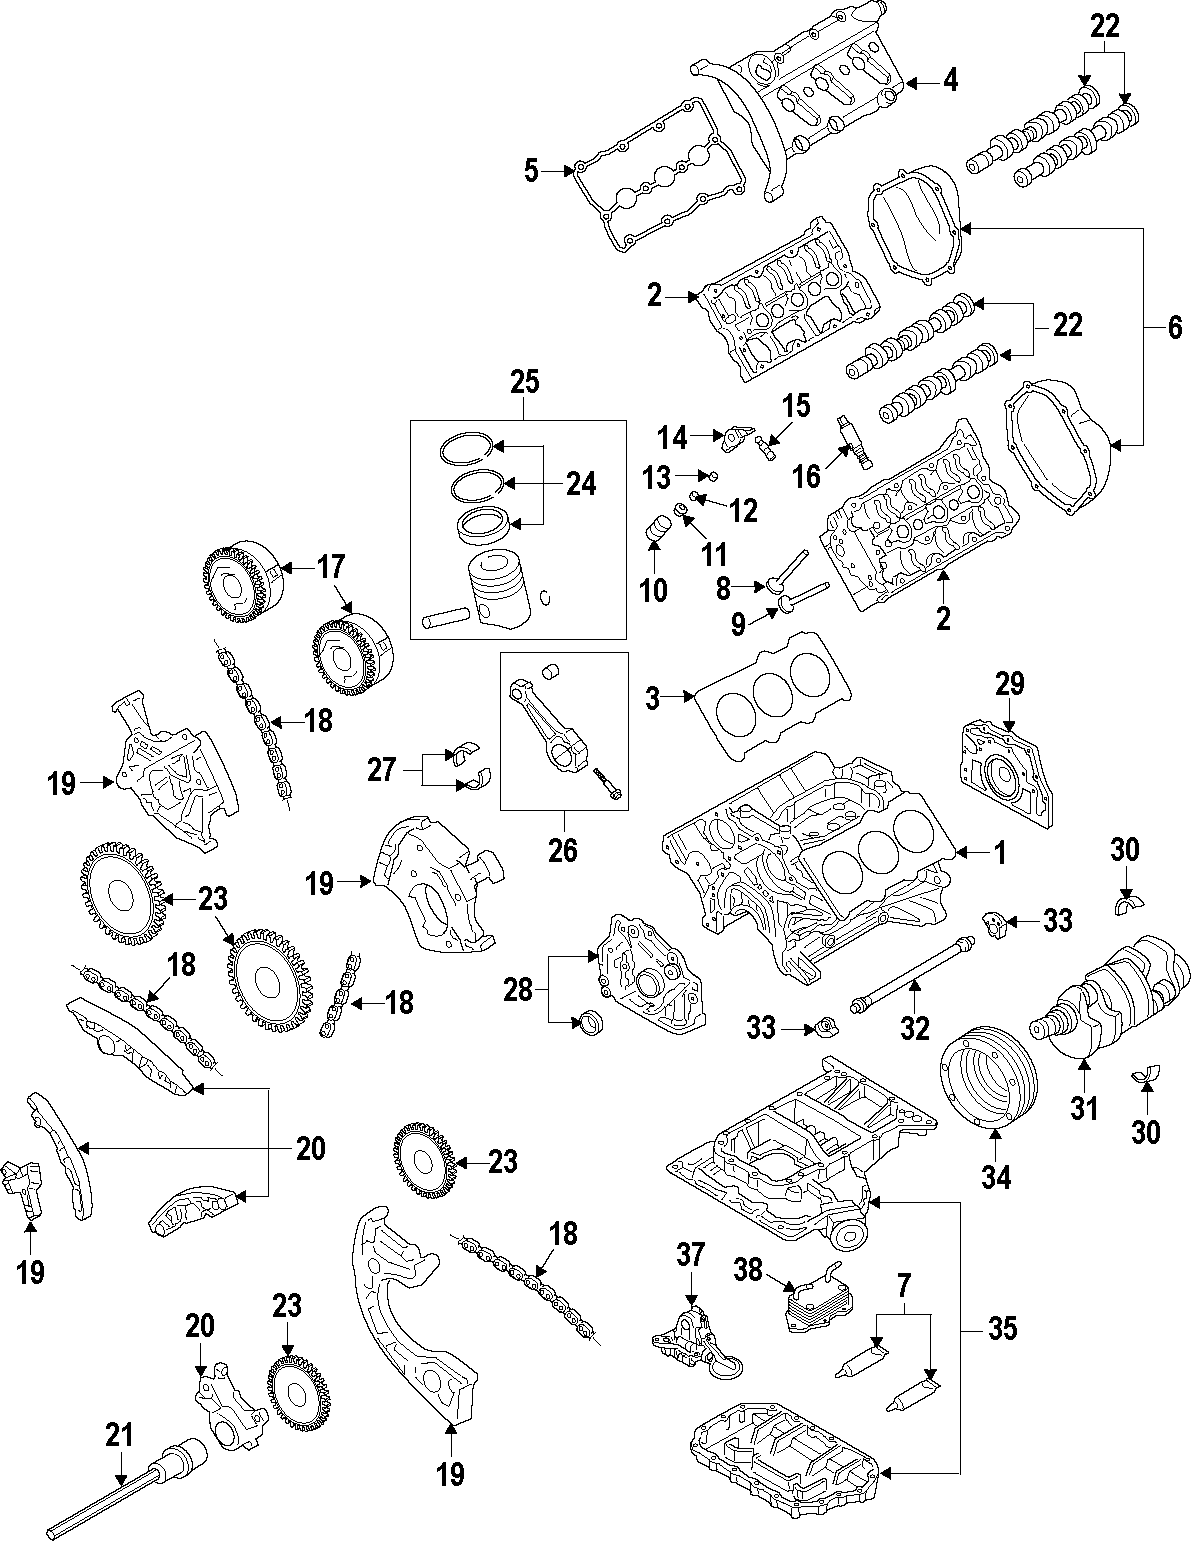 Audi Q5 Engine Timing Chain Oil Pump Drive Chain